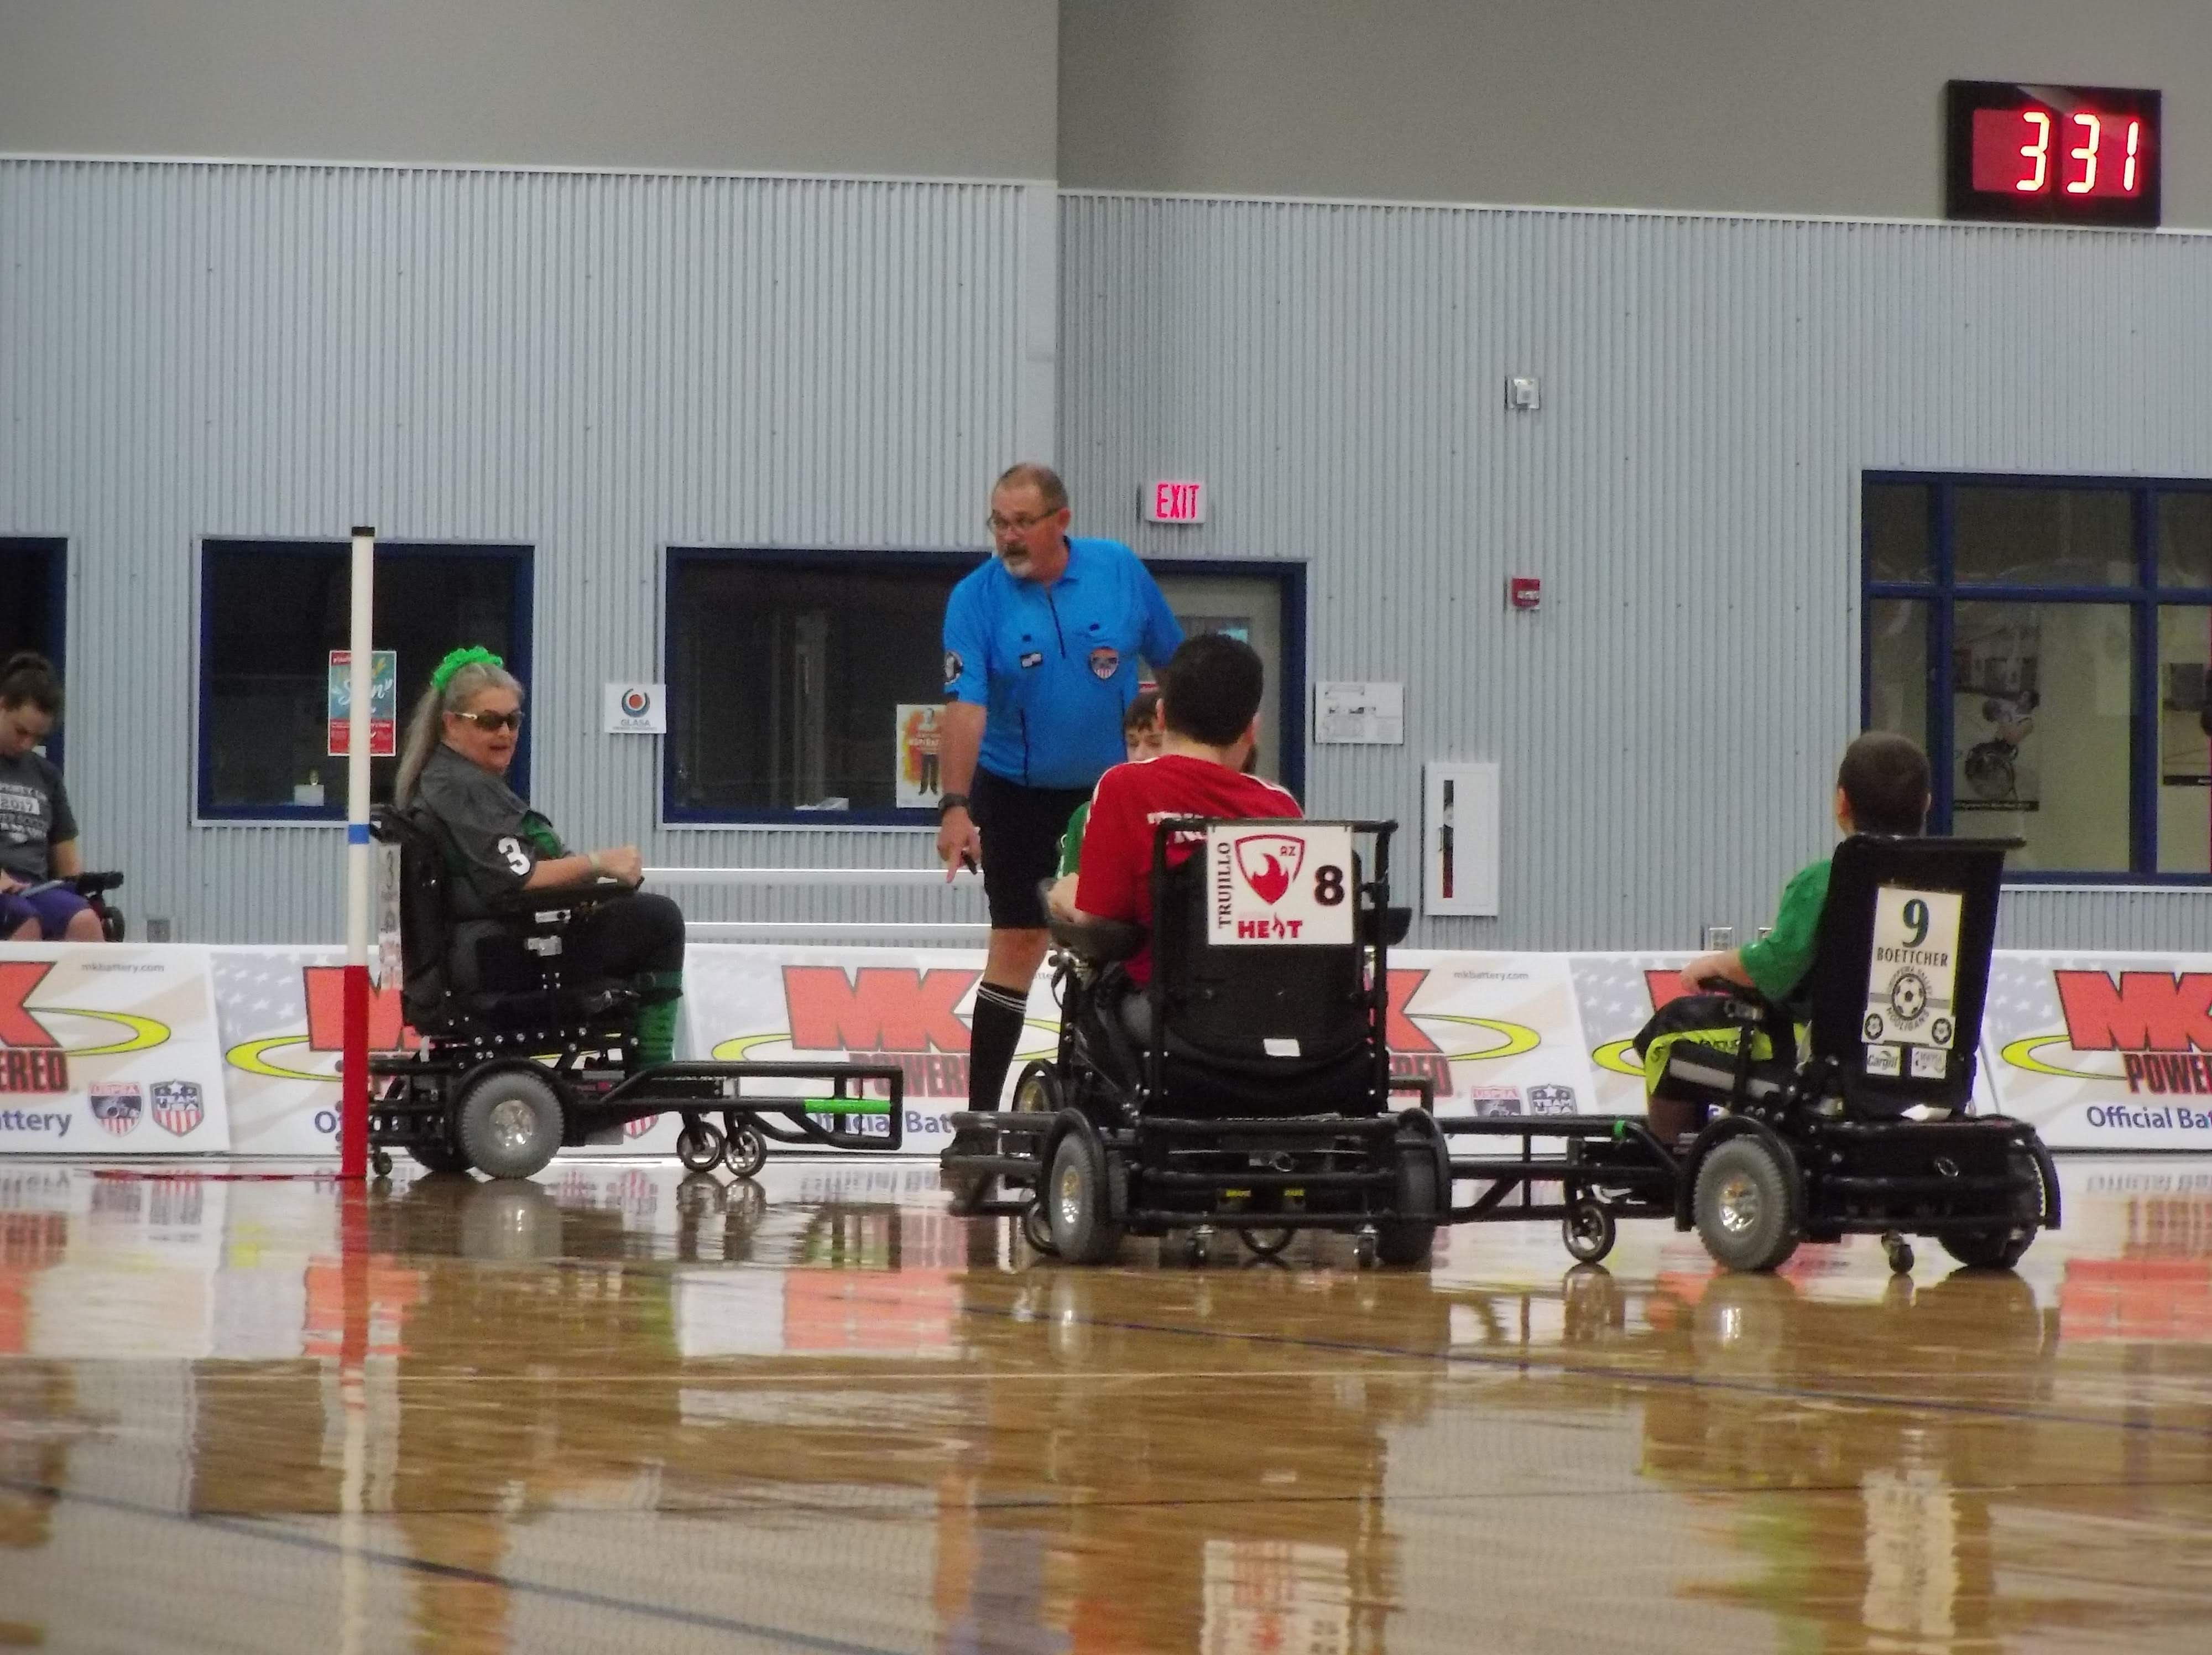 Arizona and Chippewa Valley Power Soccer players on a court